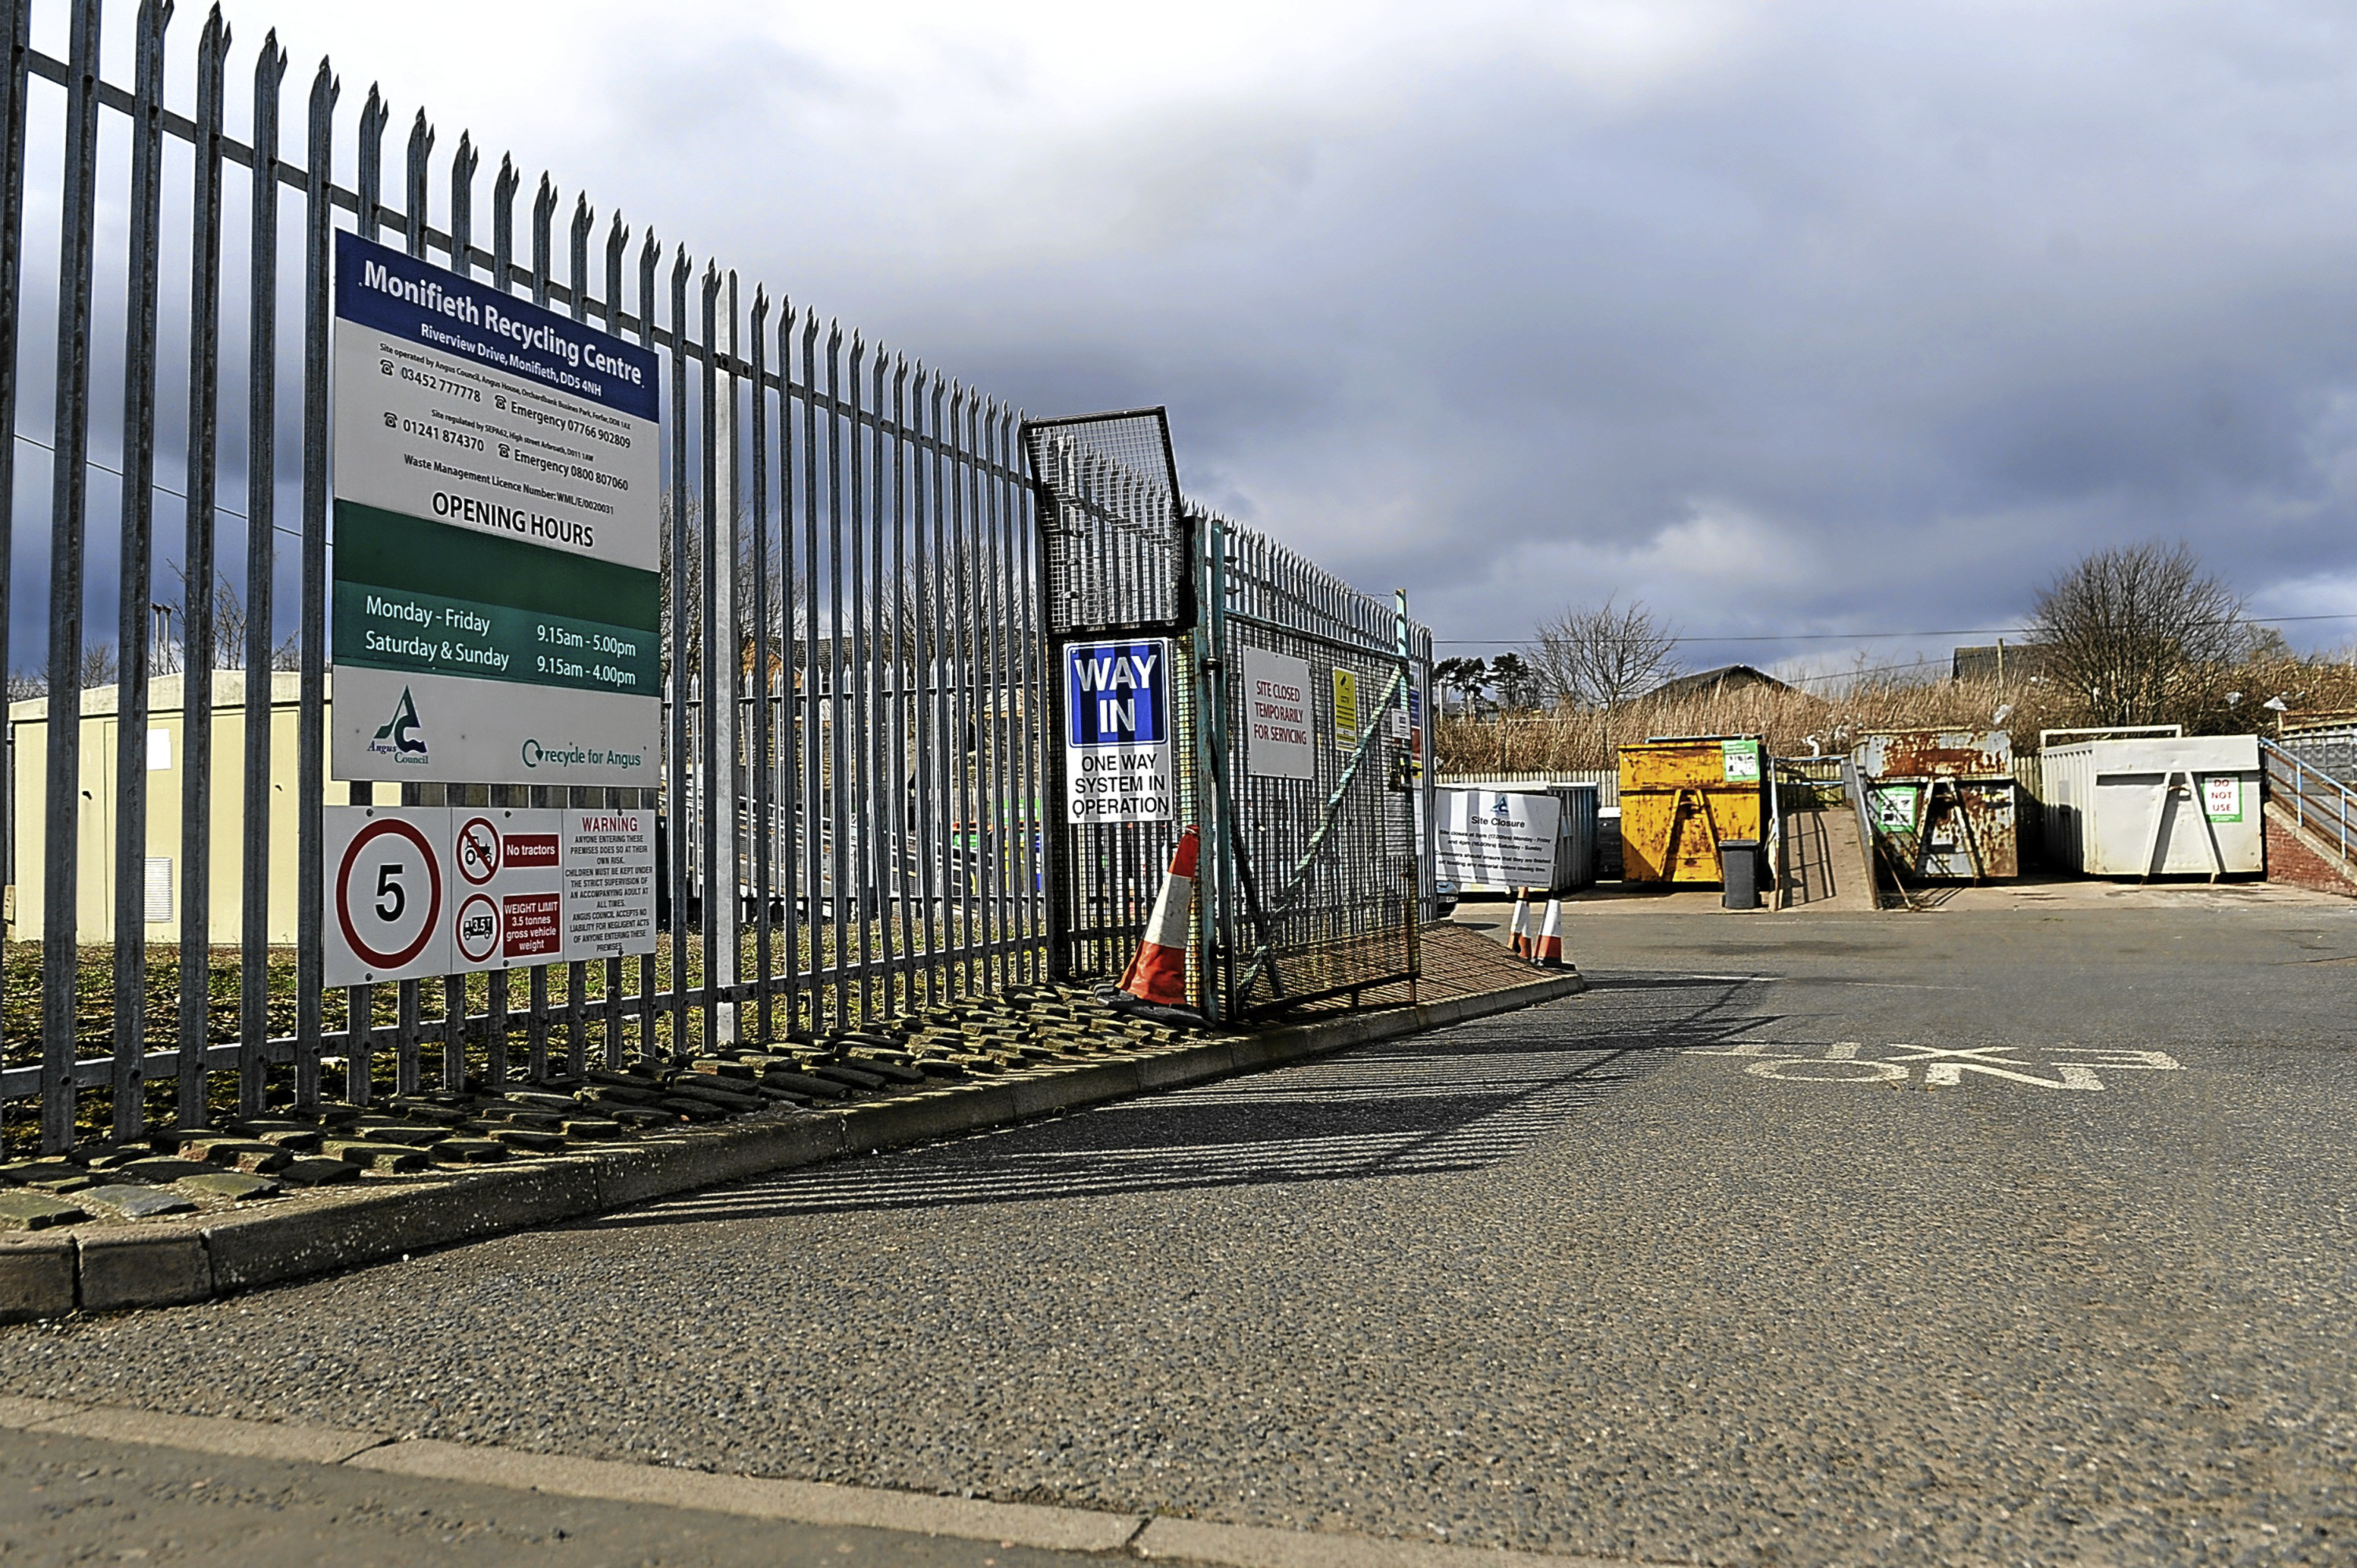 There are proposals to close recycling centres, such as this one at Monifieth